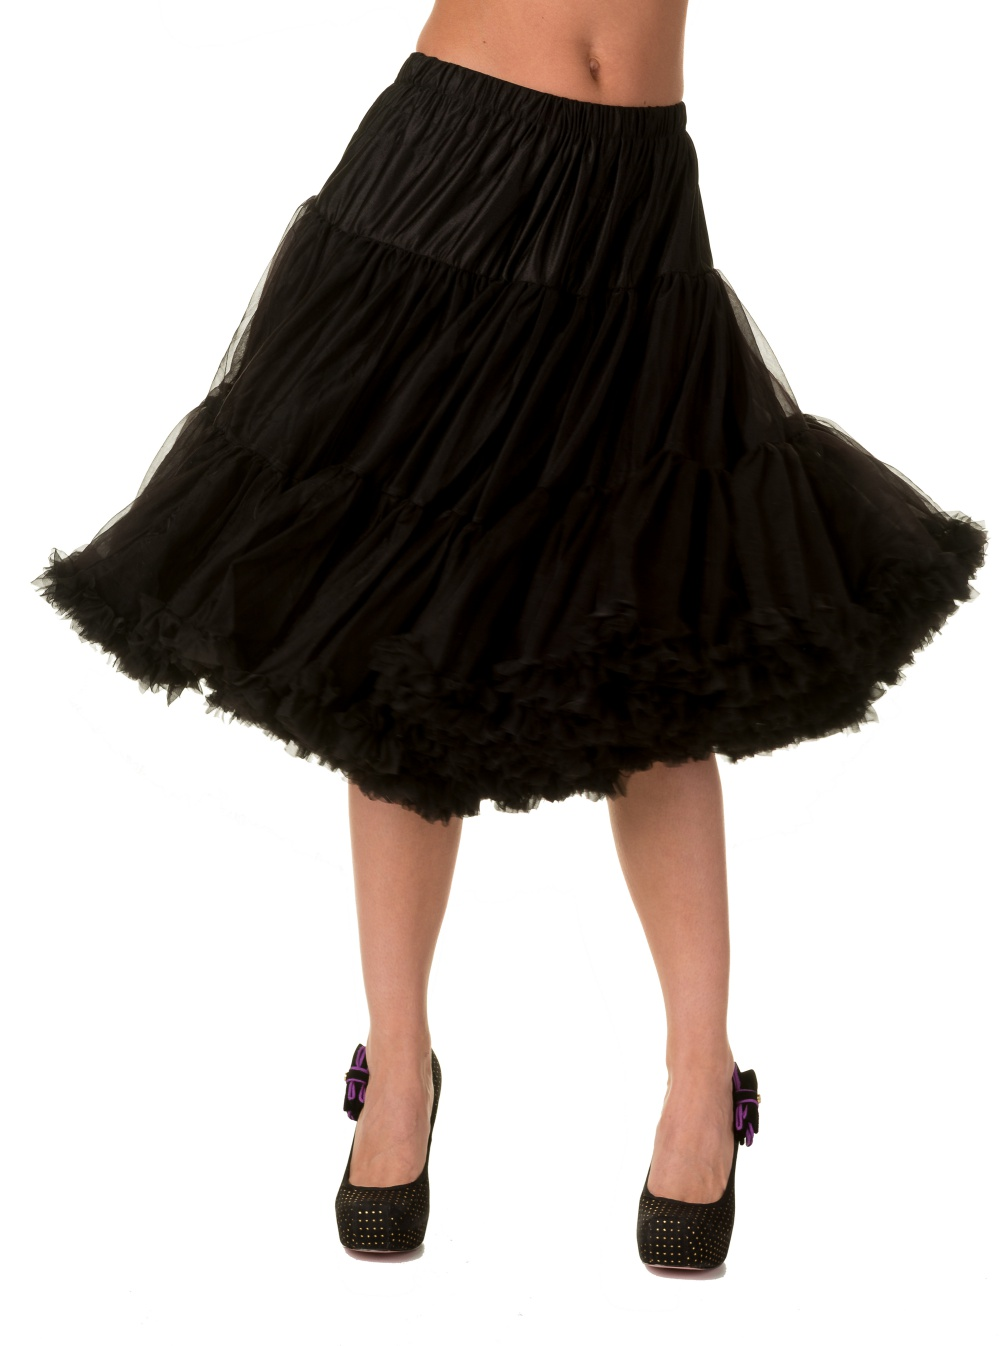 Banned Retro 50s Lizzy Lifeforms Black Petticoat